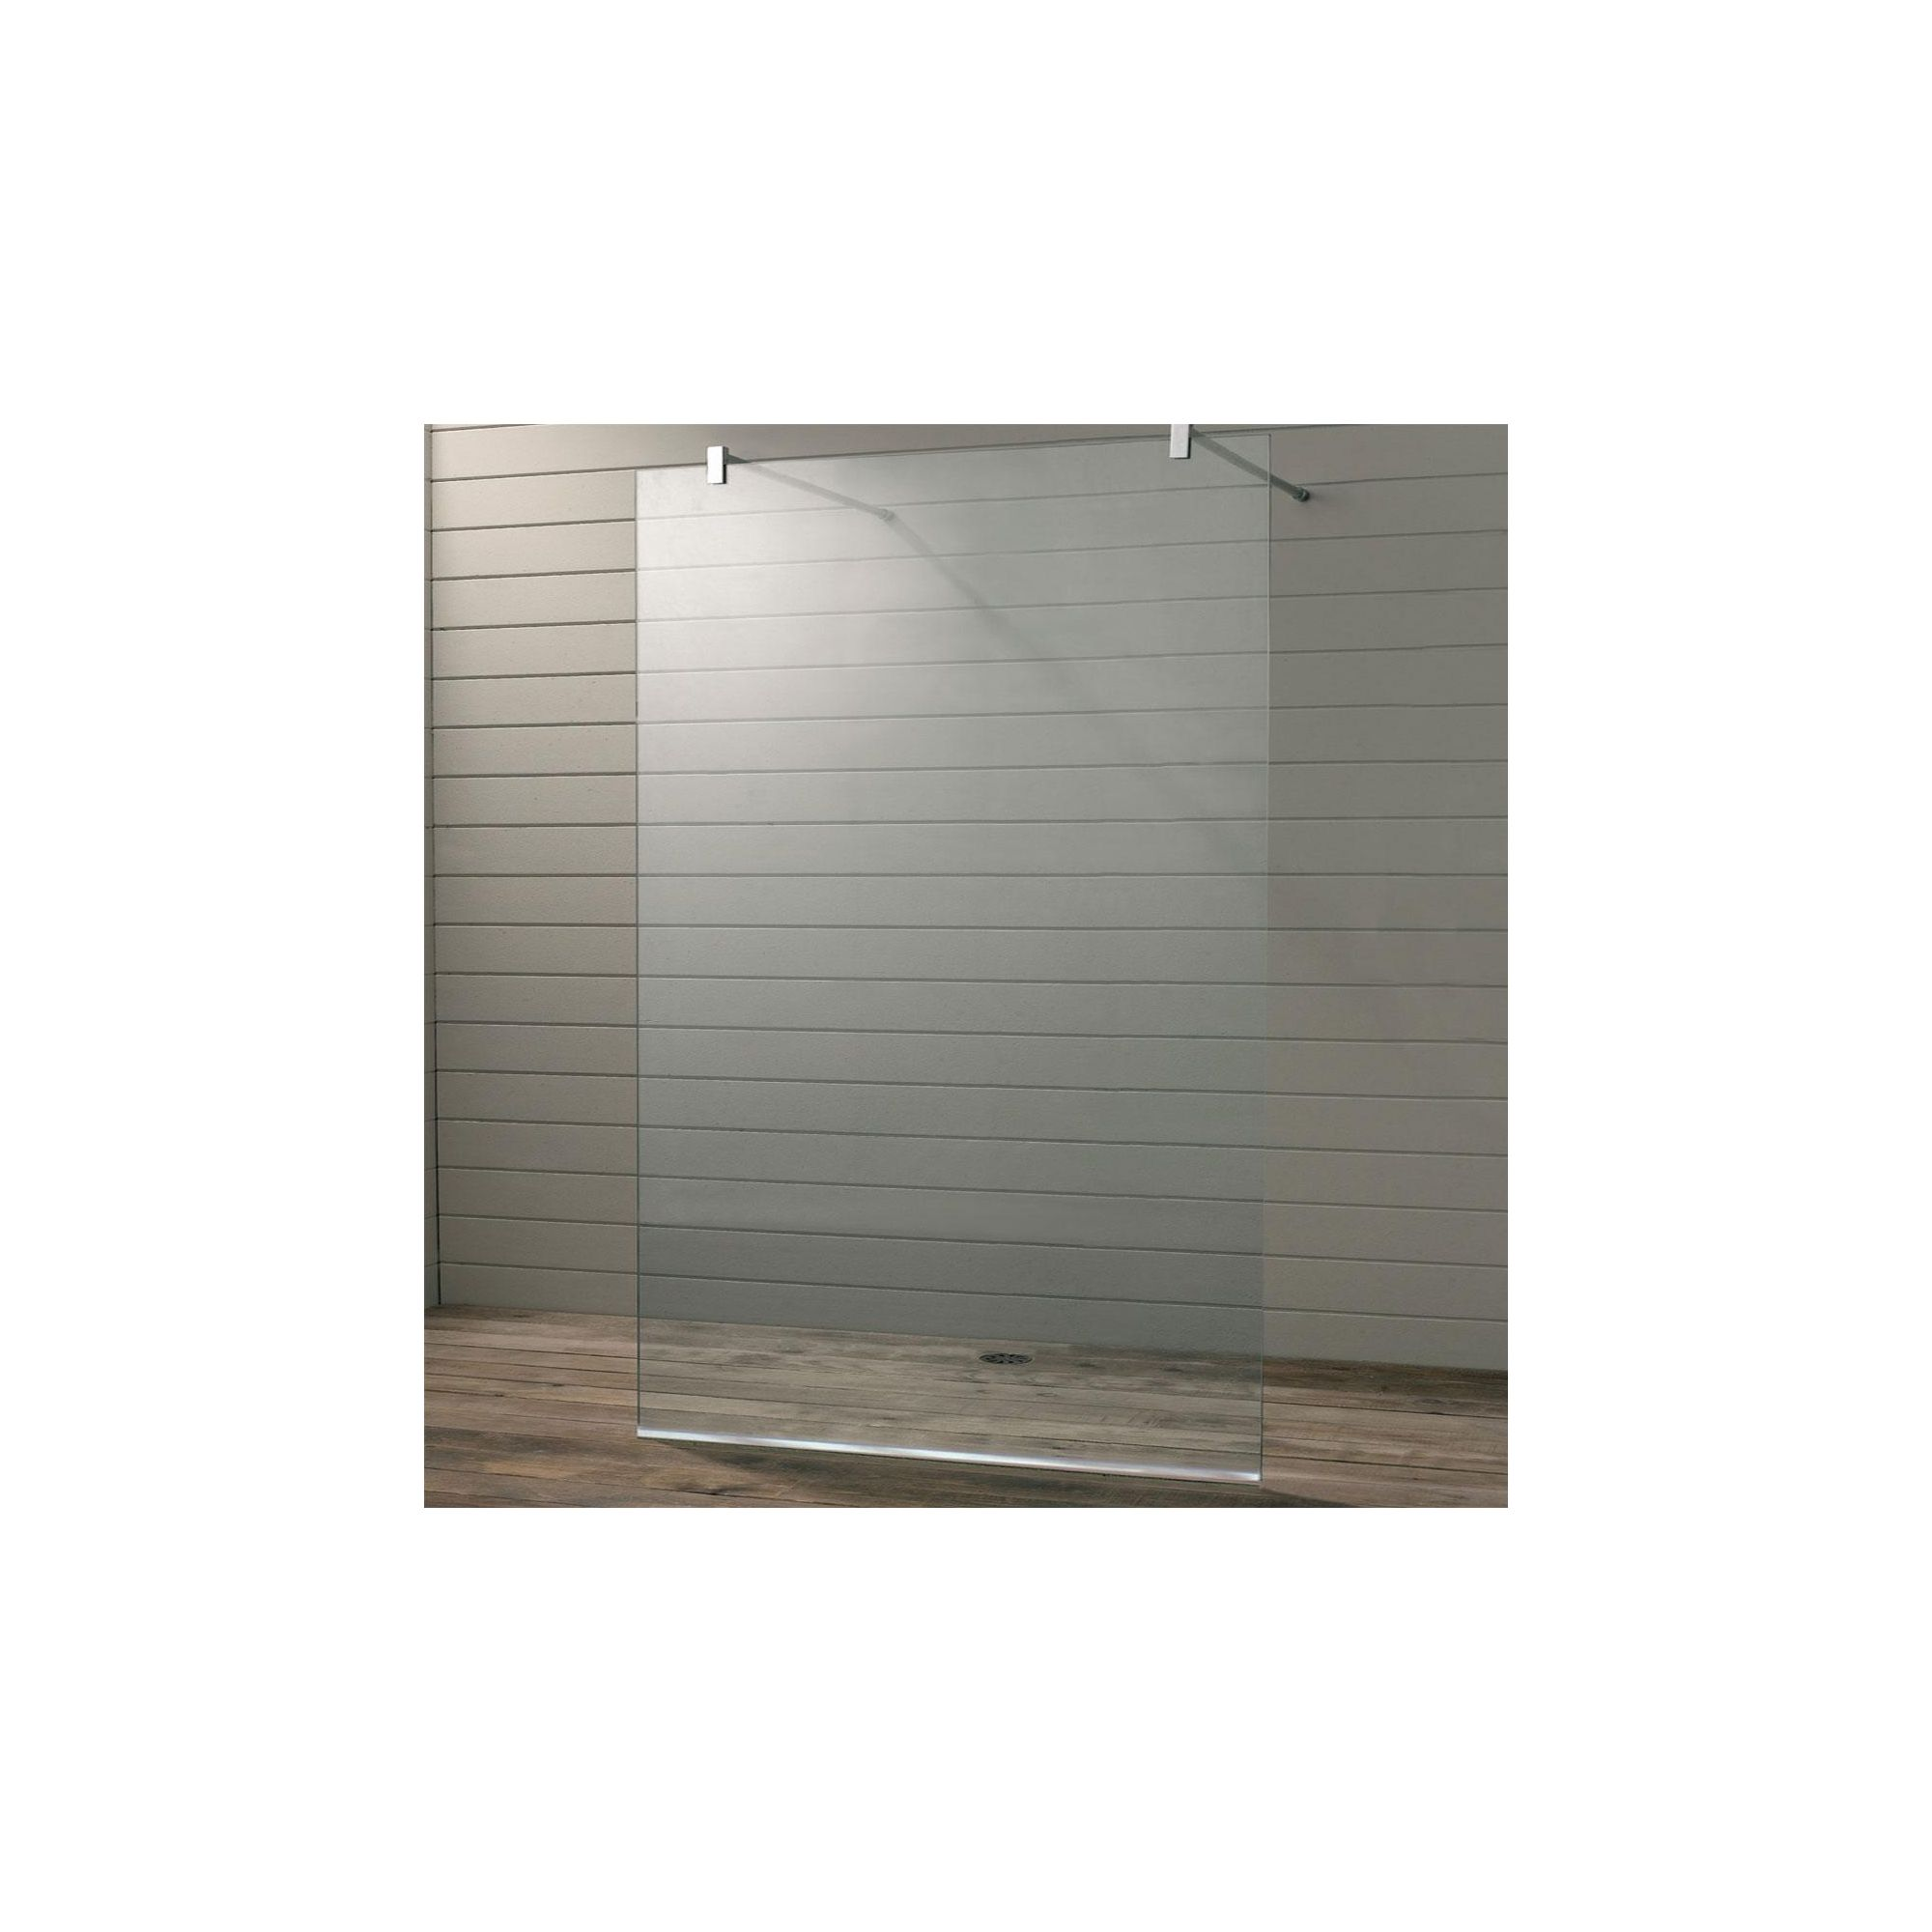 Duchy Premium Wet Room Glass Shower Panel, 1200mm x 800mm, 10mm Glass, Low Profile Tray at Tesco Direct